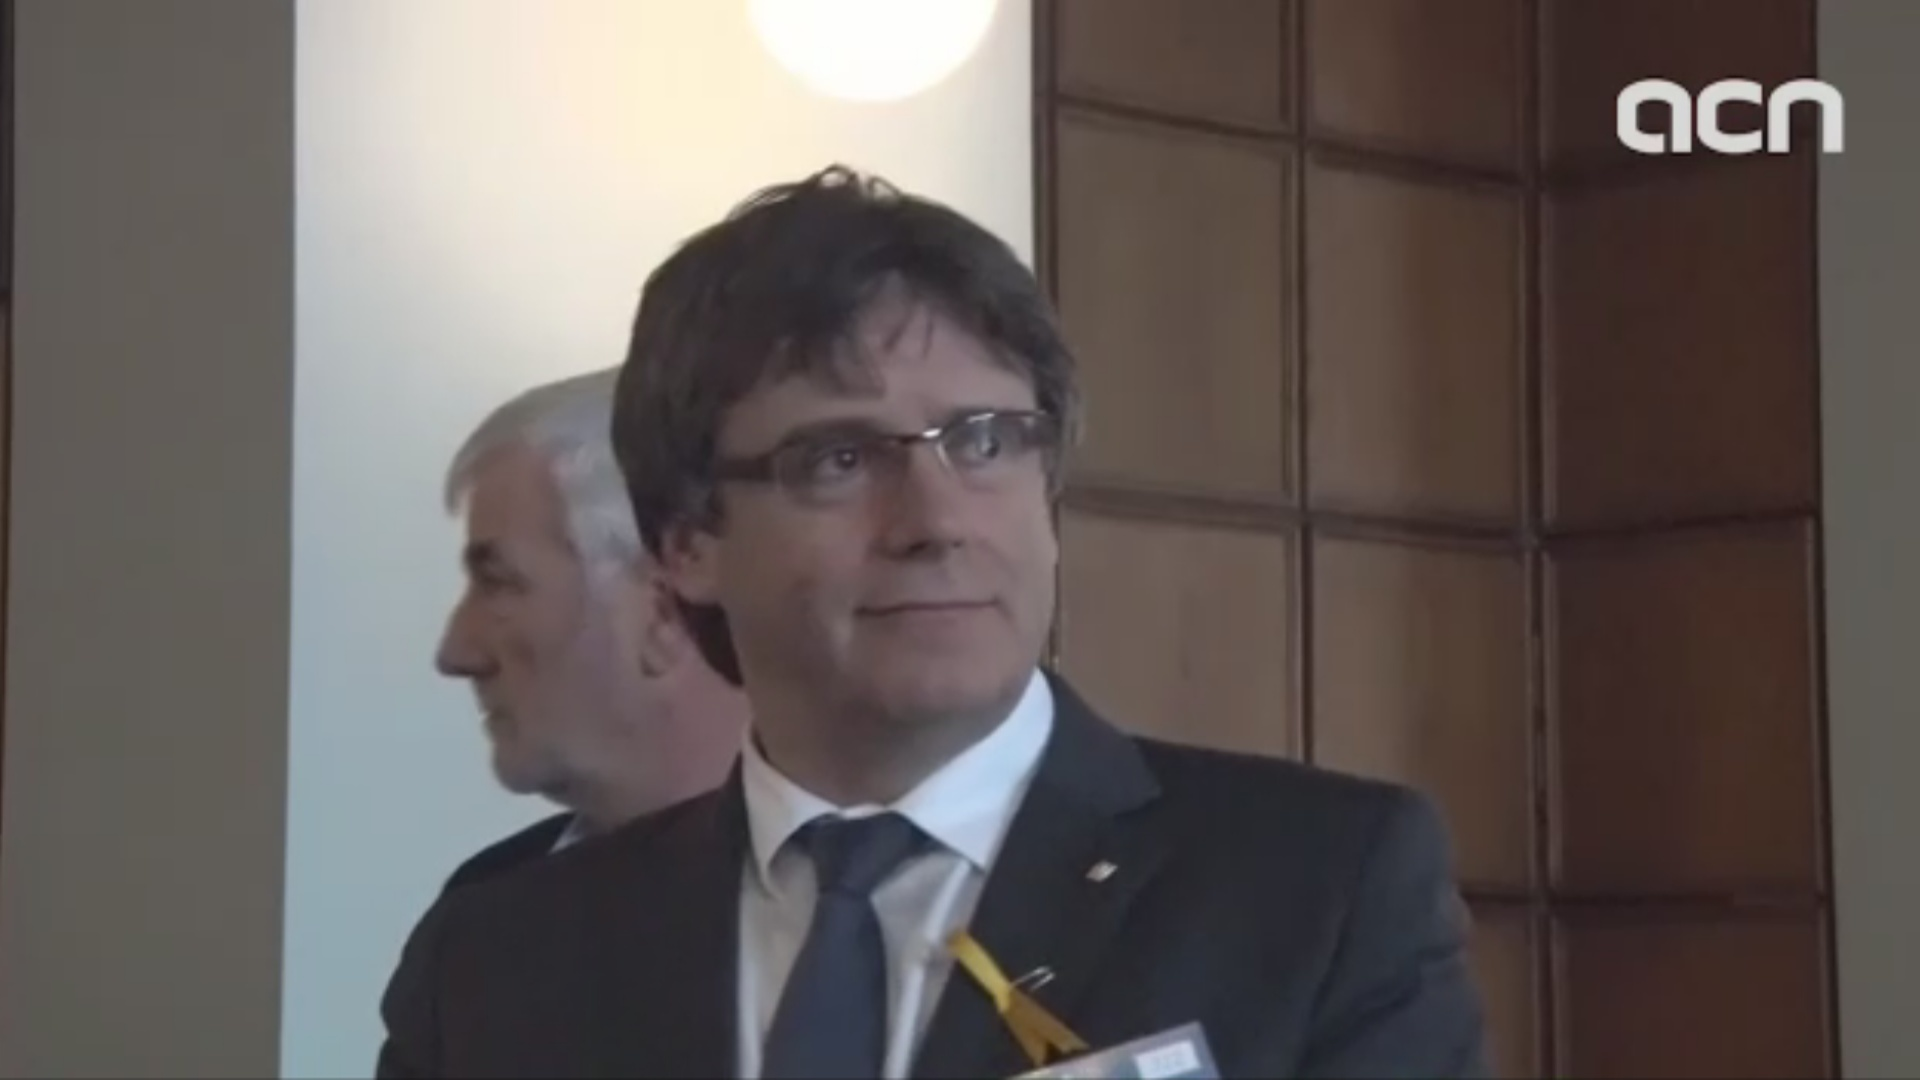 Puigdemont released on bail